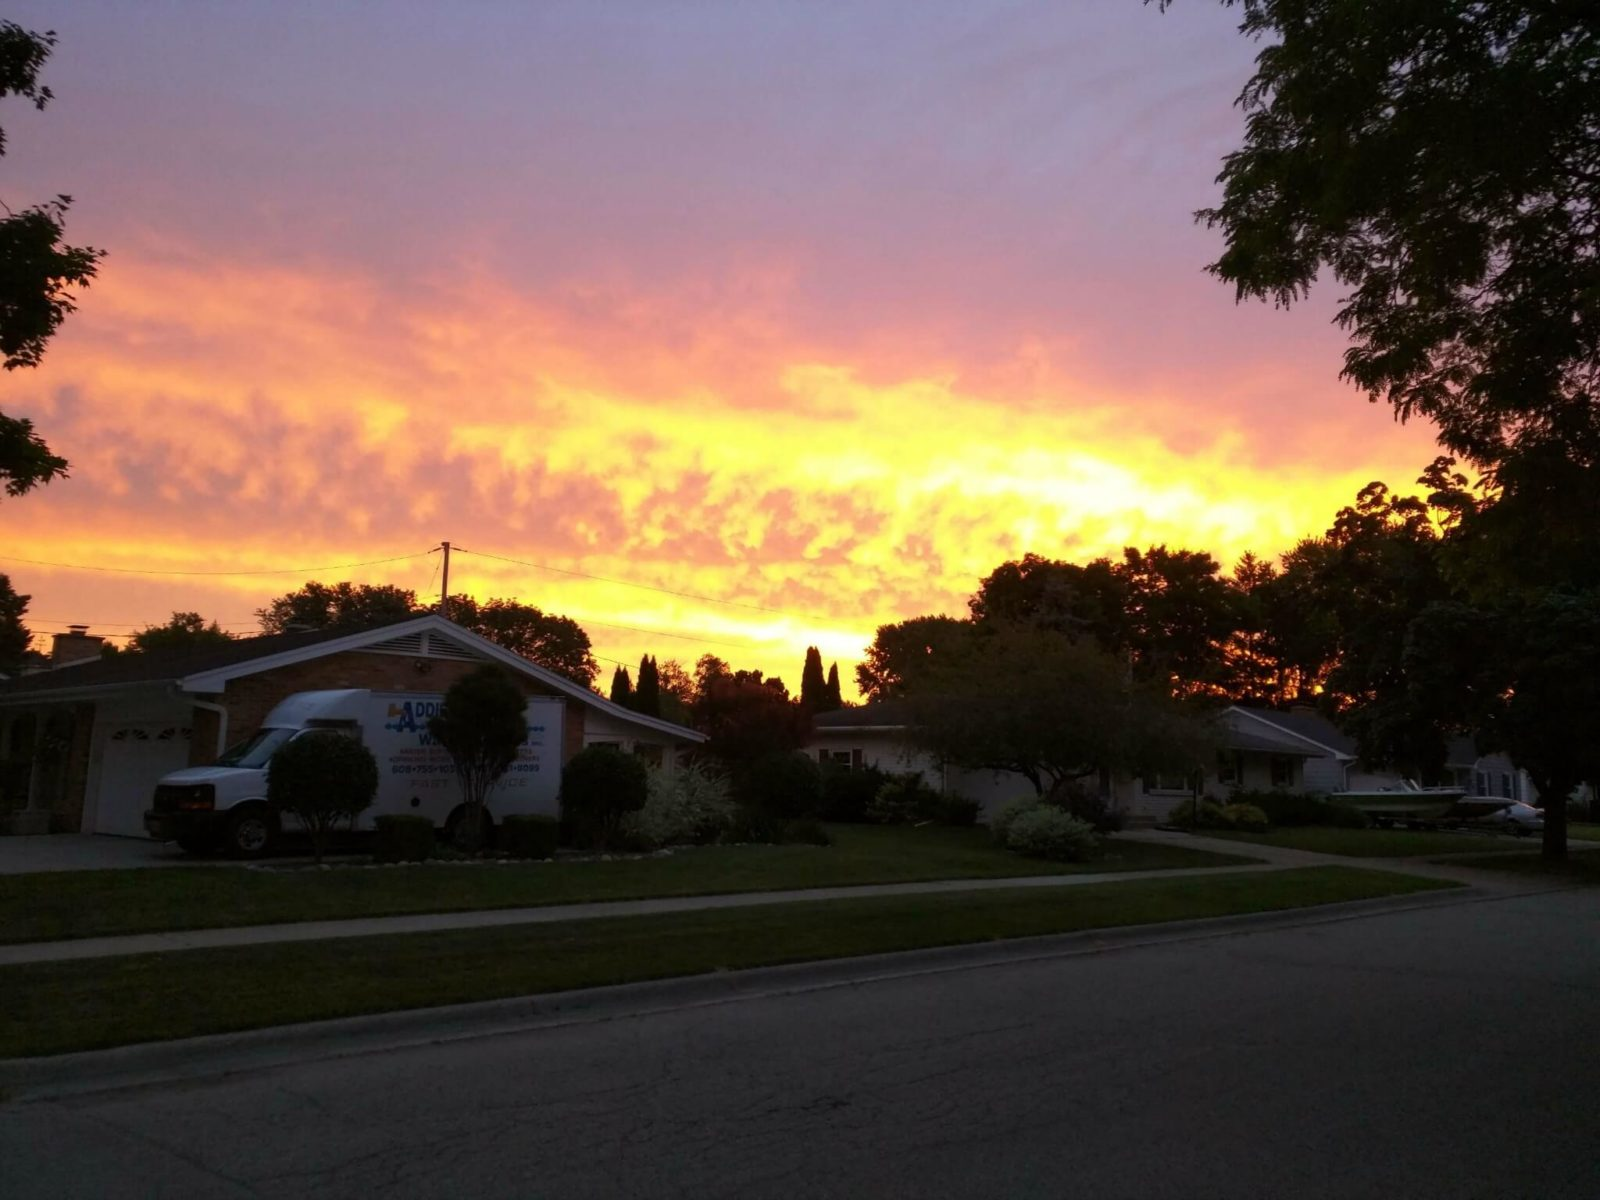 Sunrise in Janesville, Wisconsin on July 2, 2016